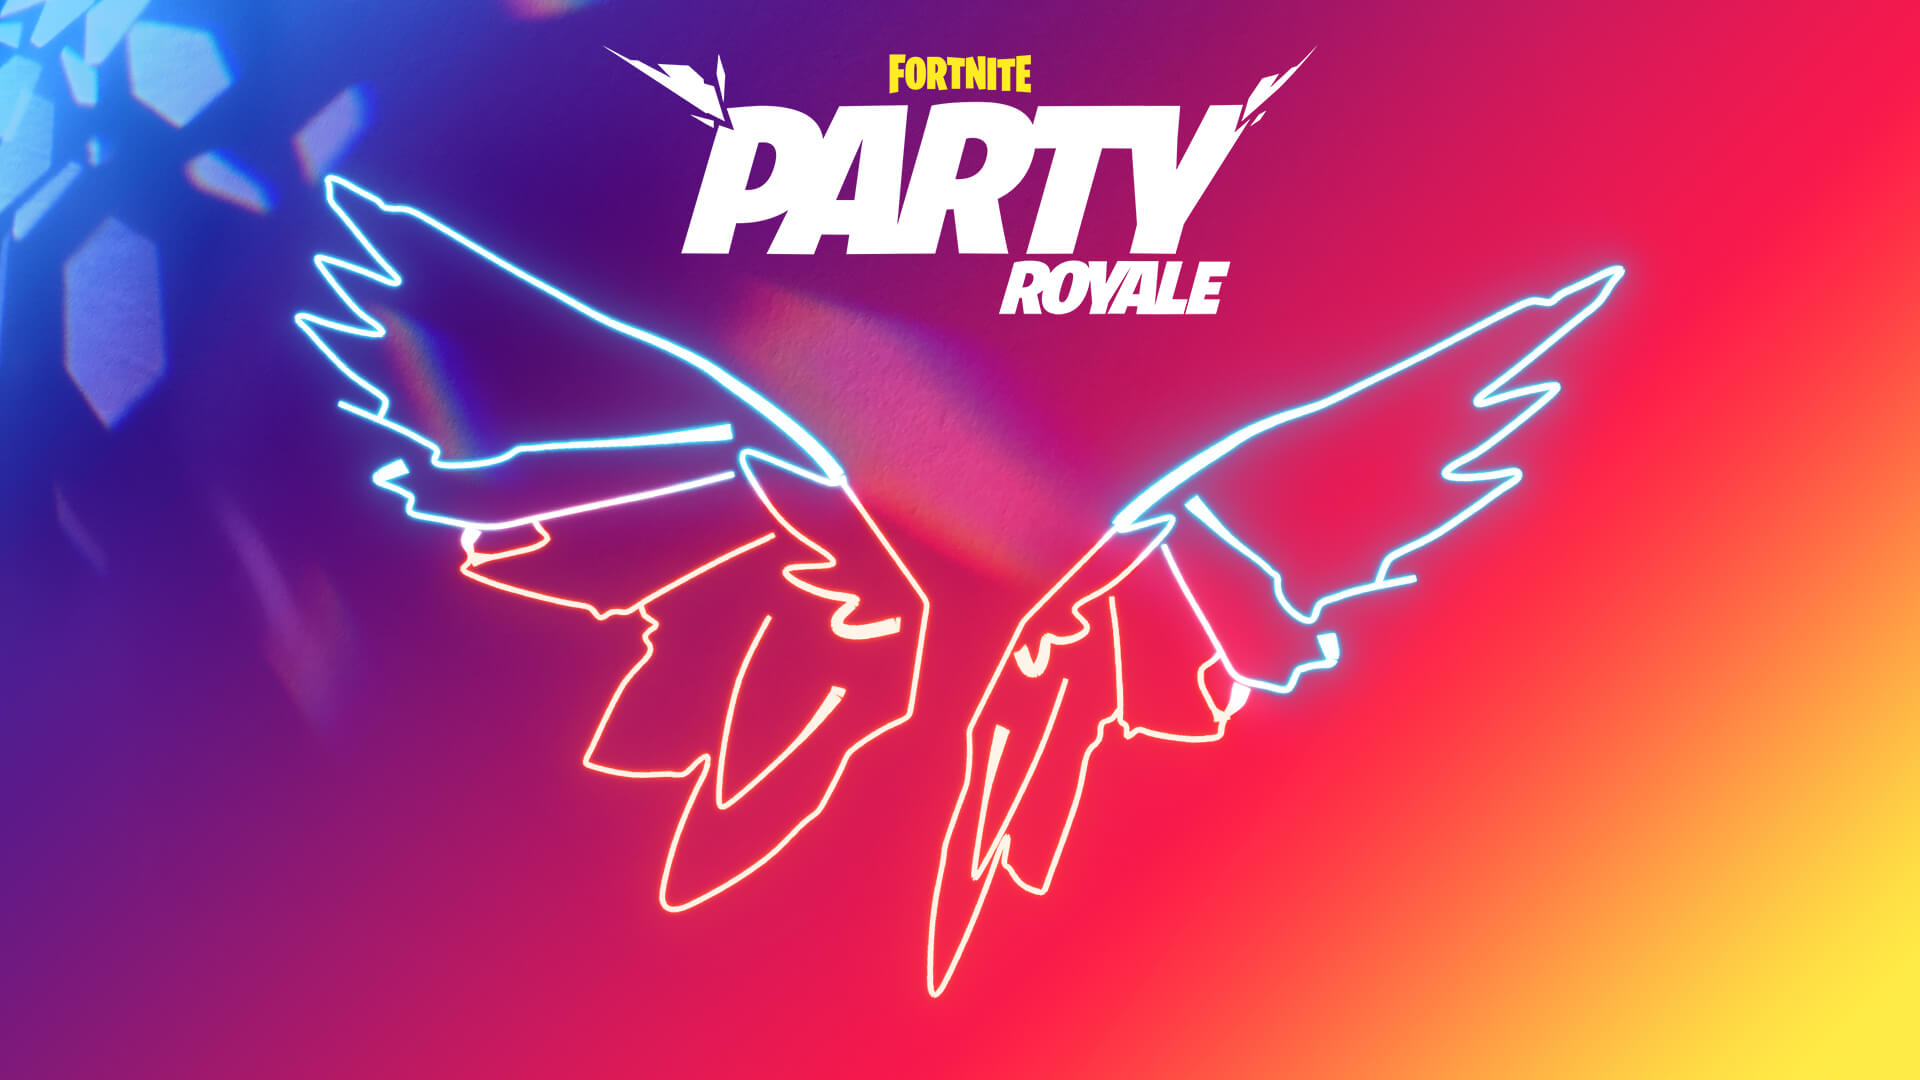 Fortnite party royale party favor